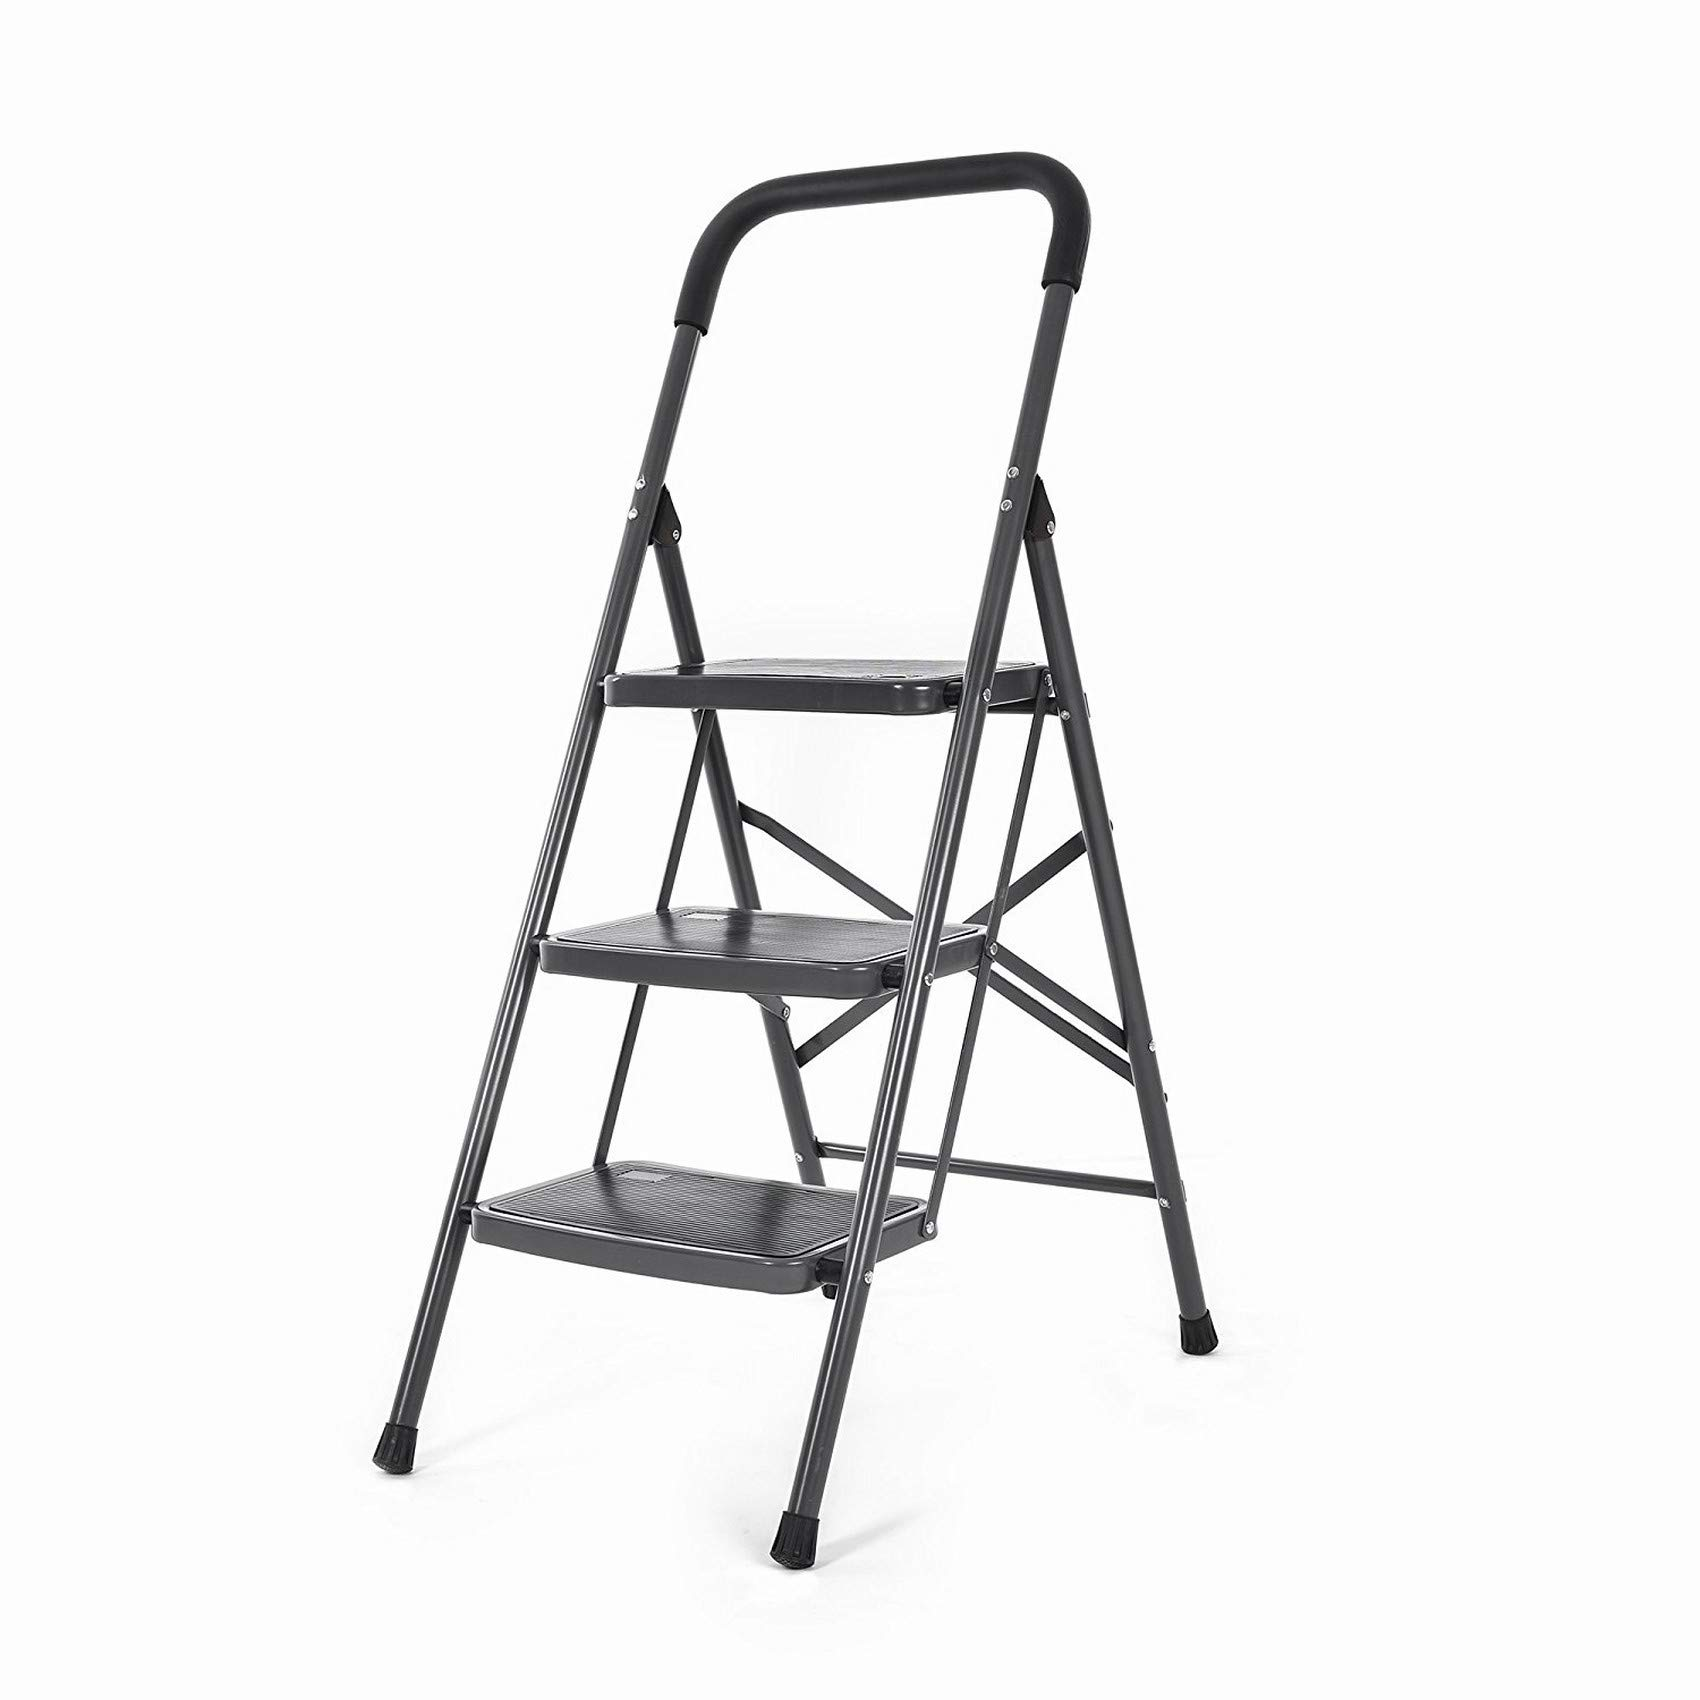 Bathla Boost 3-Step Foldable Steel Ladder with Anti-Slip Steps product image